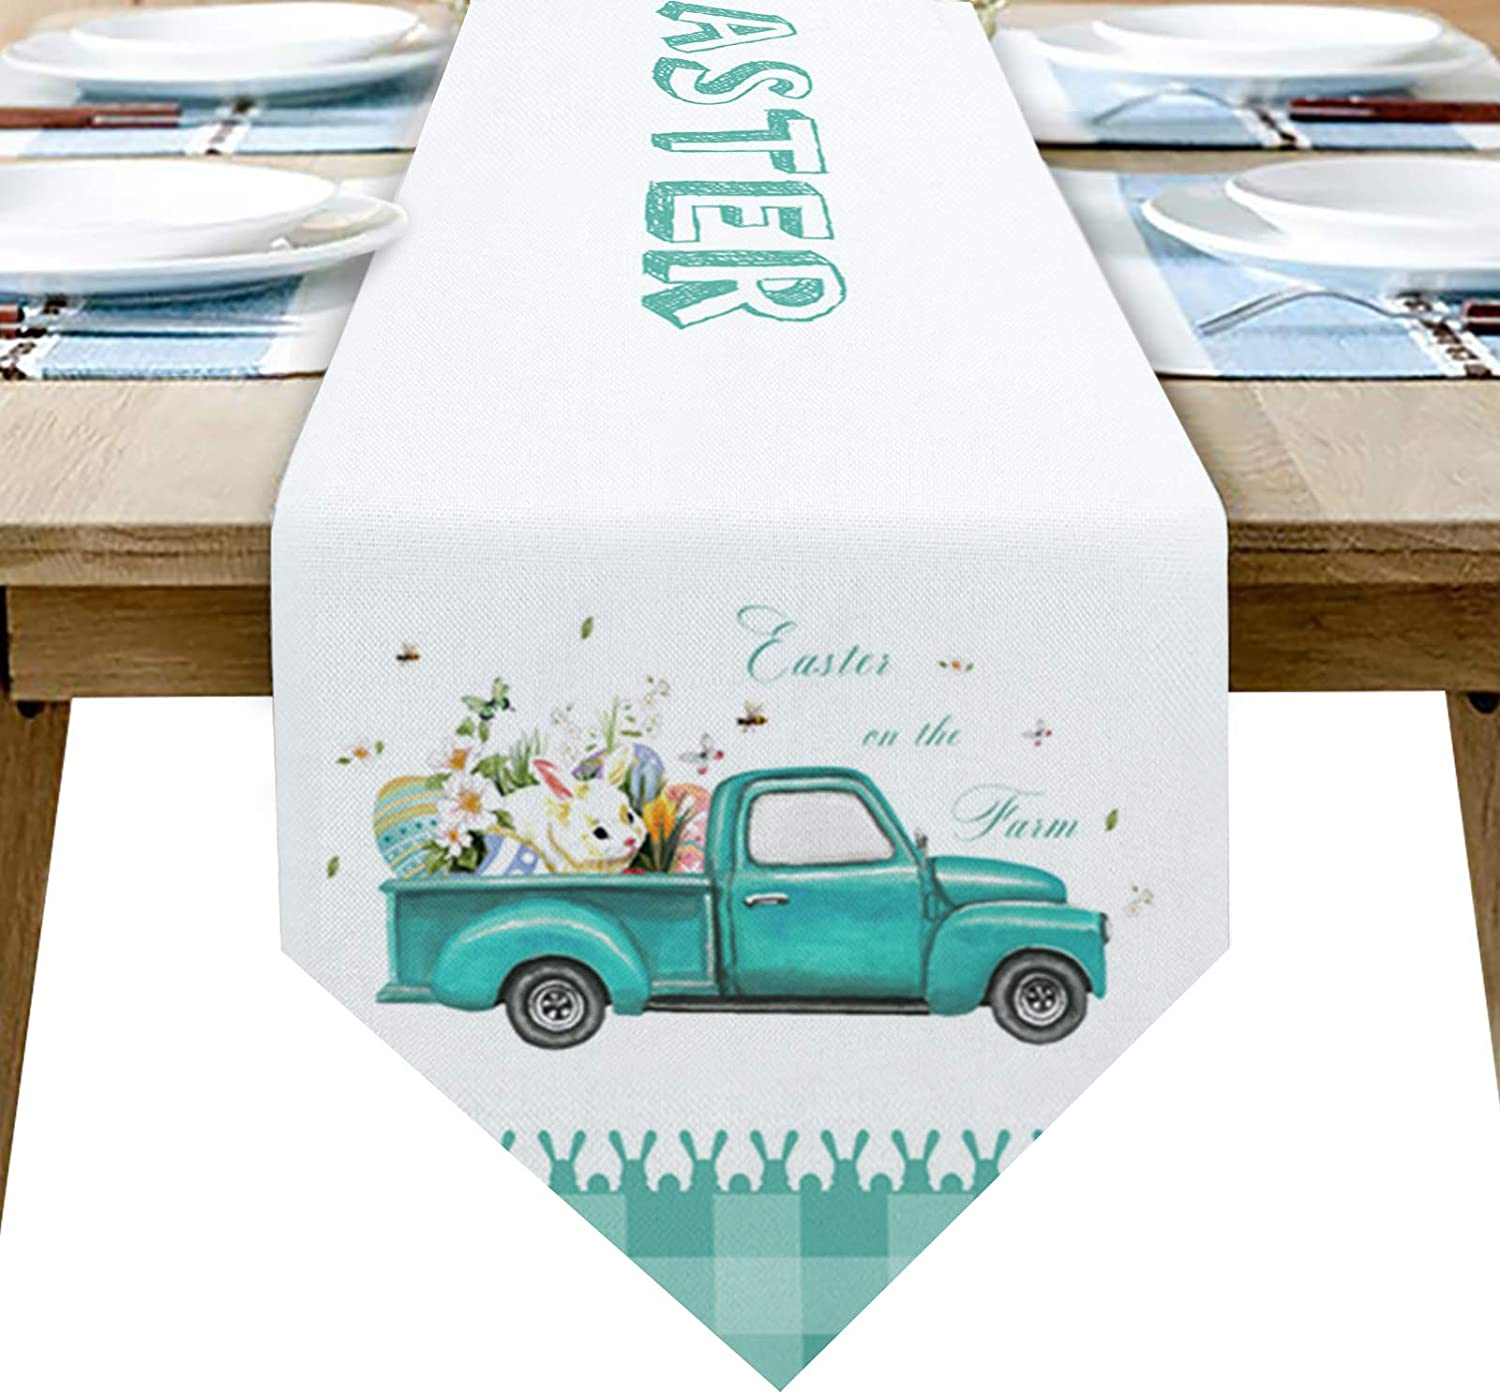 SunShine Day Linen Burlap Table Runnners - 13x70 inches Long, Easter Teal Truck with Egg Rabbit Dresser Scarves Table Decor for Celebration/Wedding Bed Runners for Hotel Farm White Teal Buffalo Lace